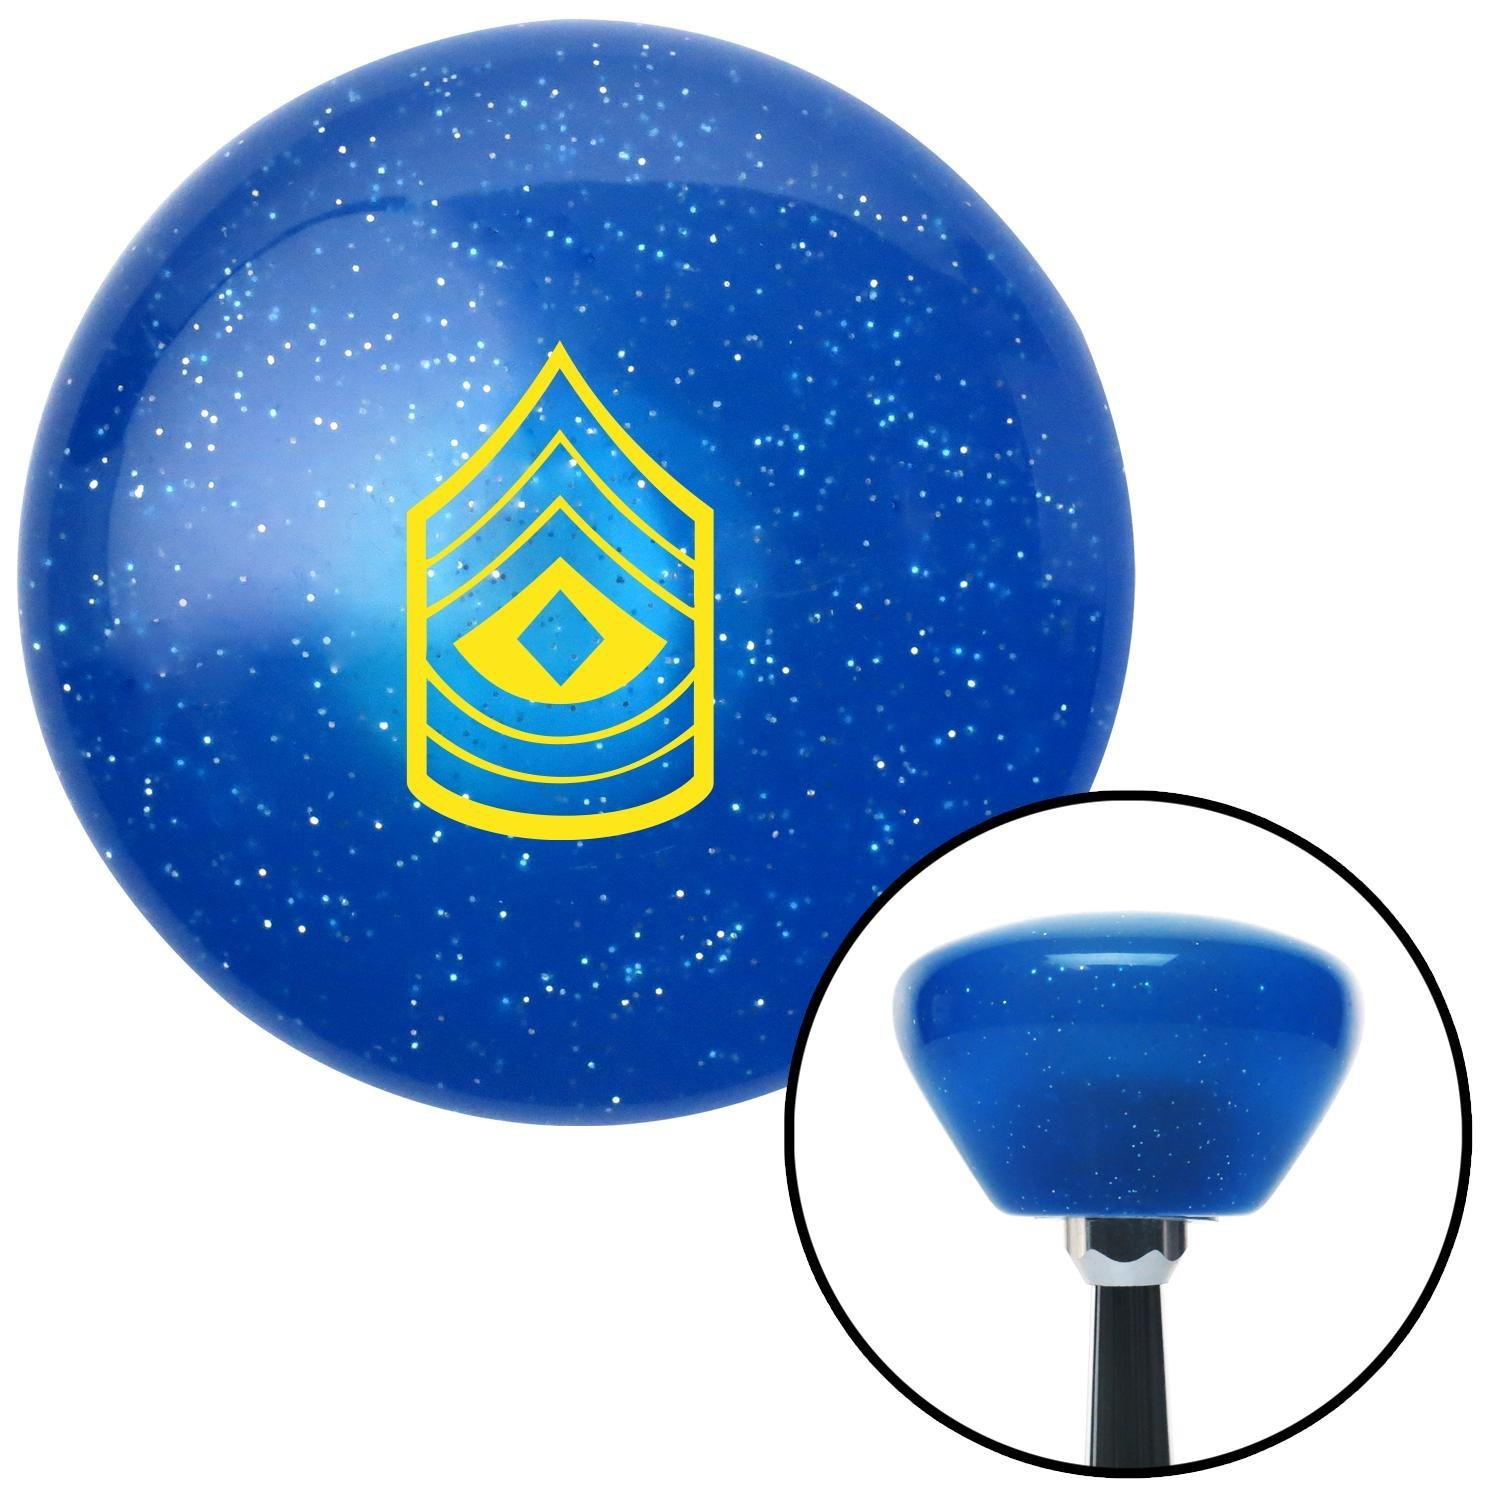 American Shifter 190559 Blue Retro Metal Flake Shift Knob with M16 x 1.5 Insert Yellow 08 First Sergeant